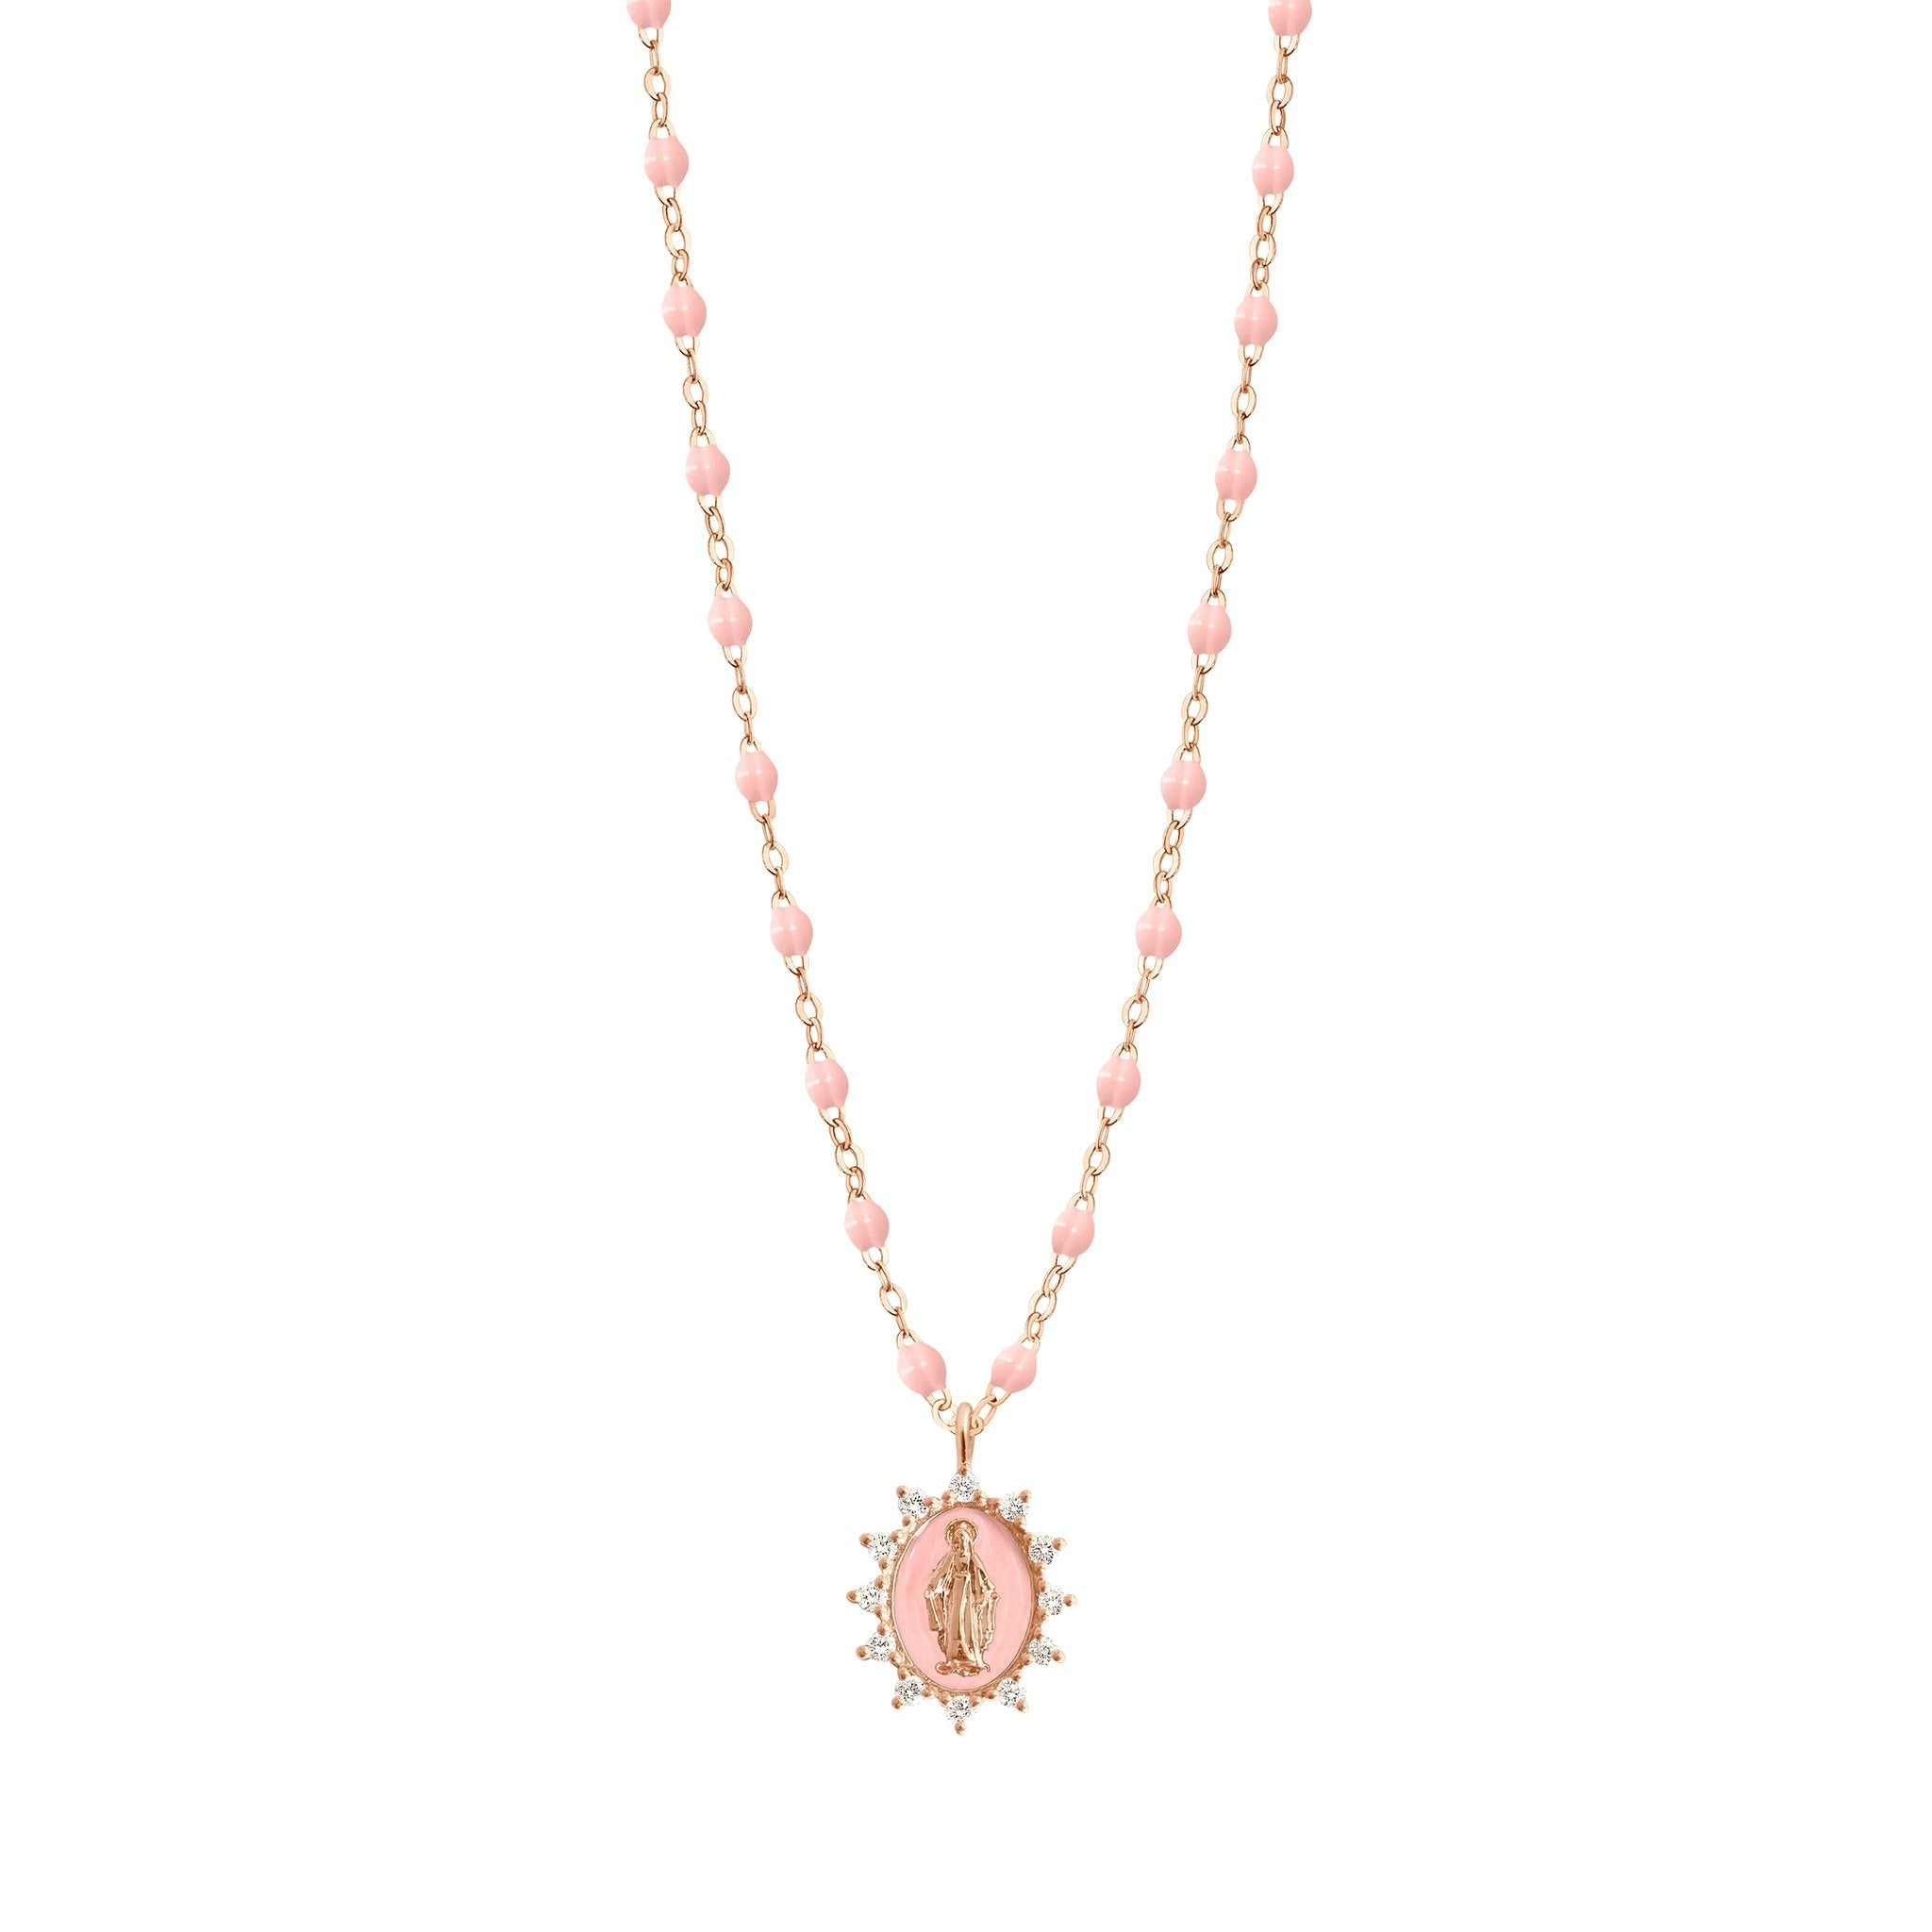 Gigi Clozeau - Petite Madone Supreme Baby Pink diamonds necklace, Rose Gold, 16.5